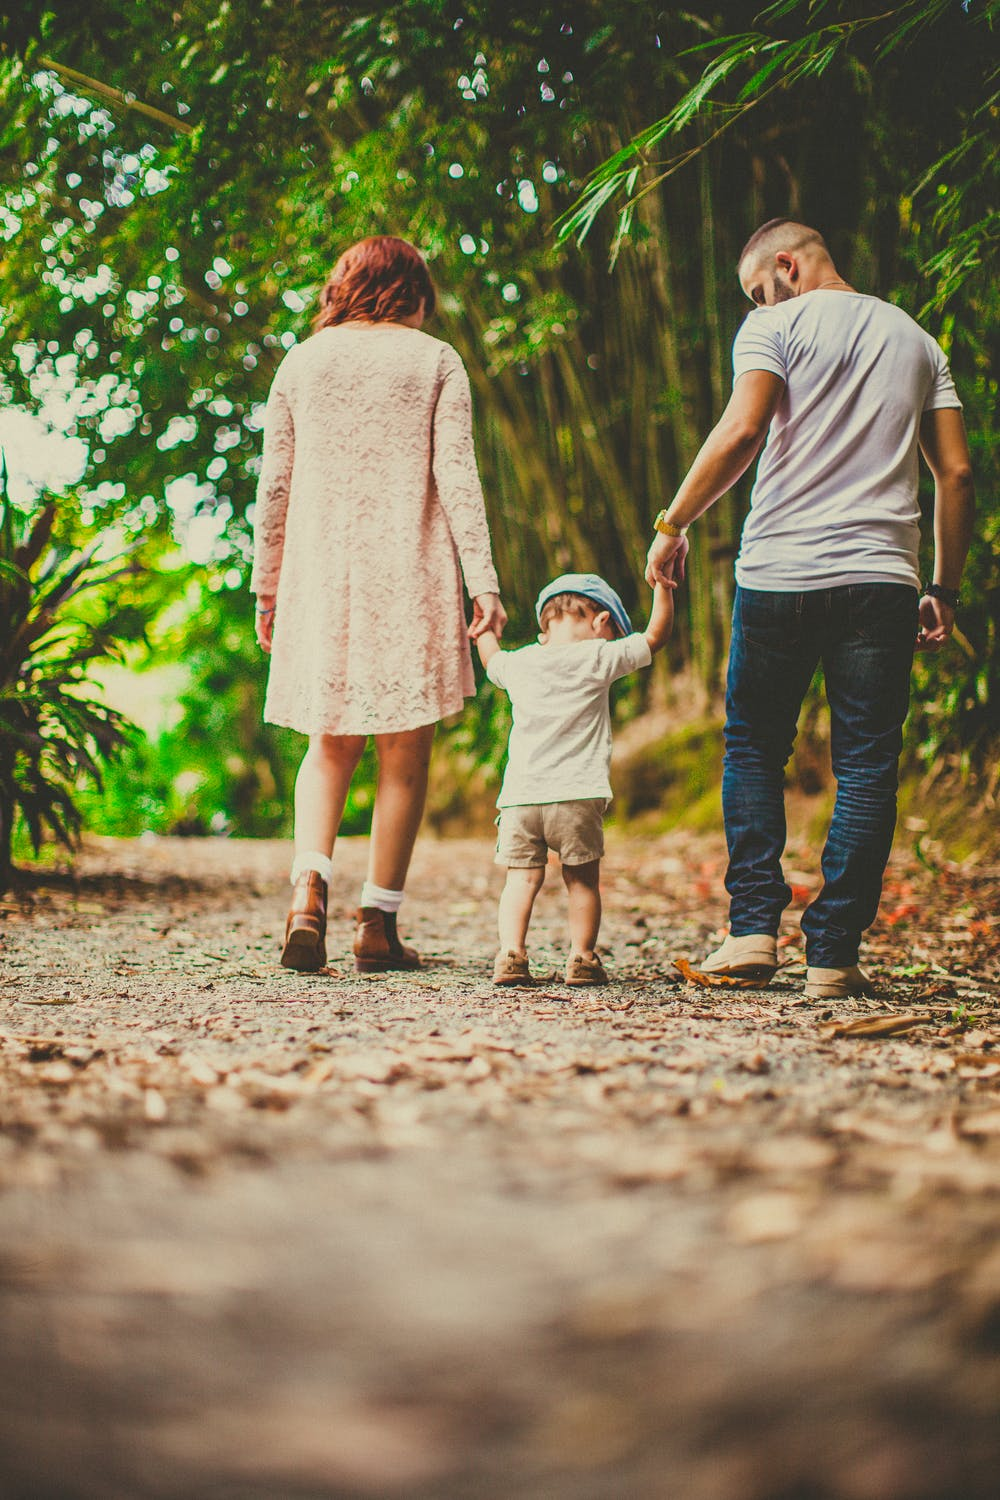 A child held by his parents on each hand while walking outdoors. | Photo: Pexels